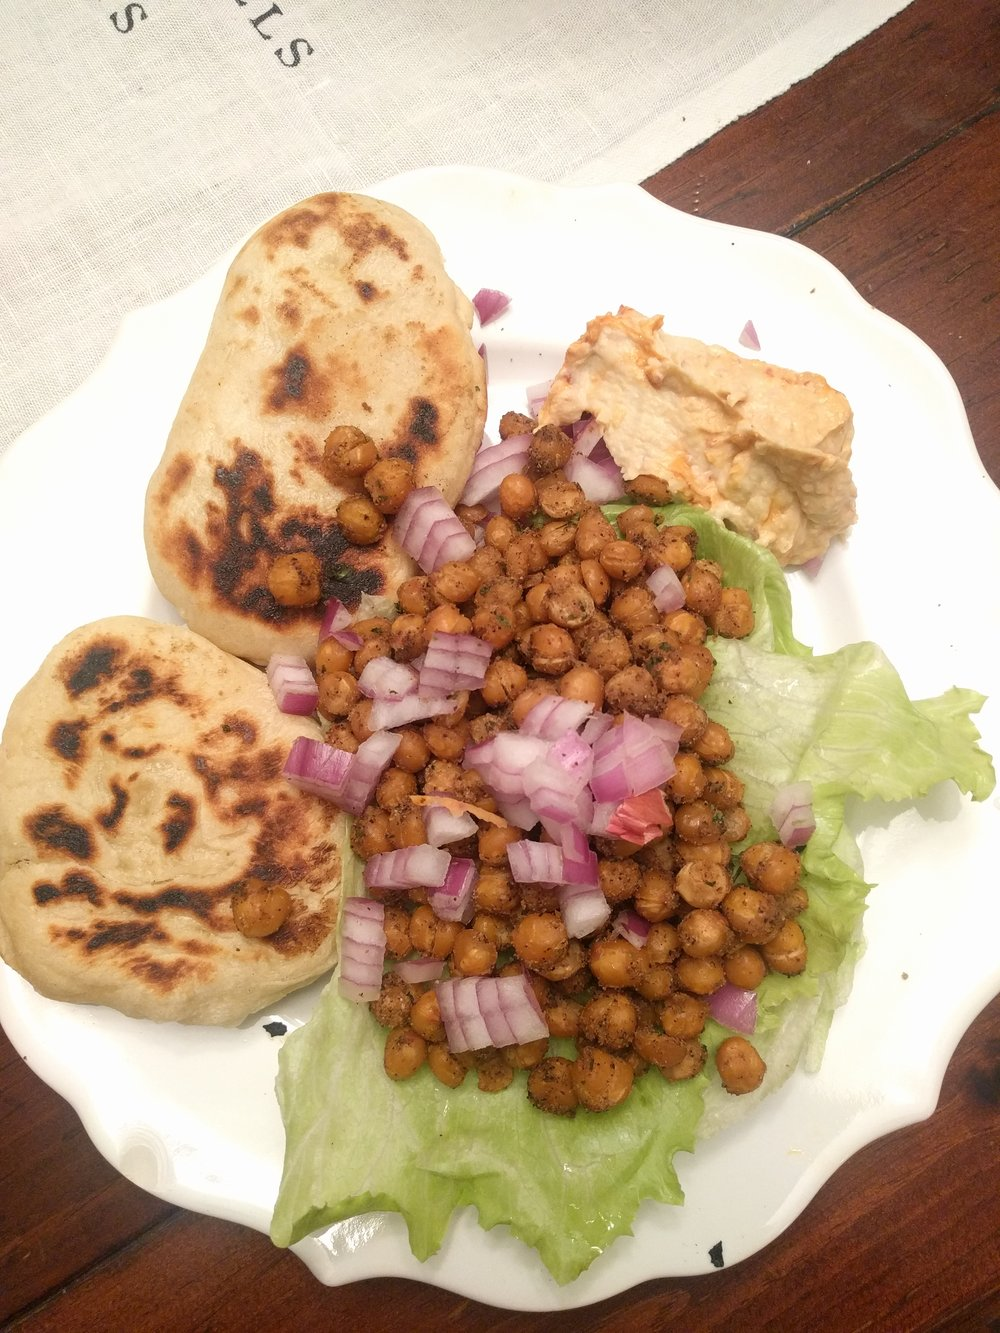 Matthew didn't know what he was missing! Chickpeas > Chicken